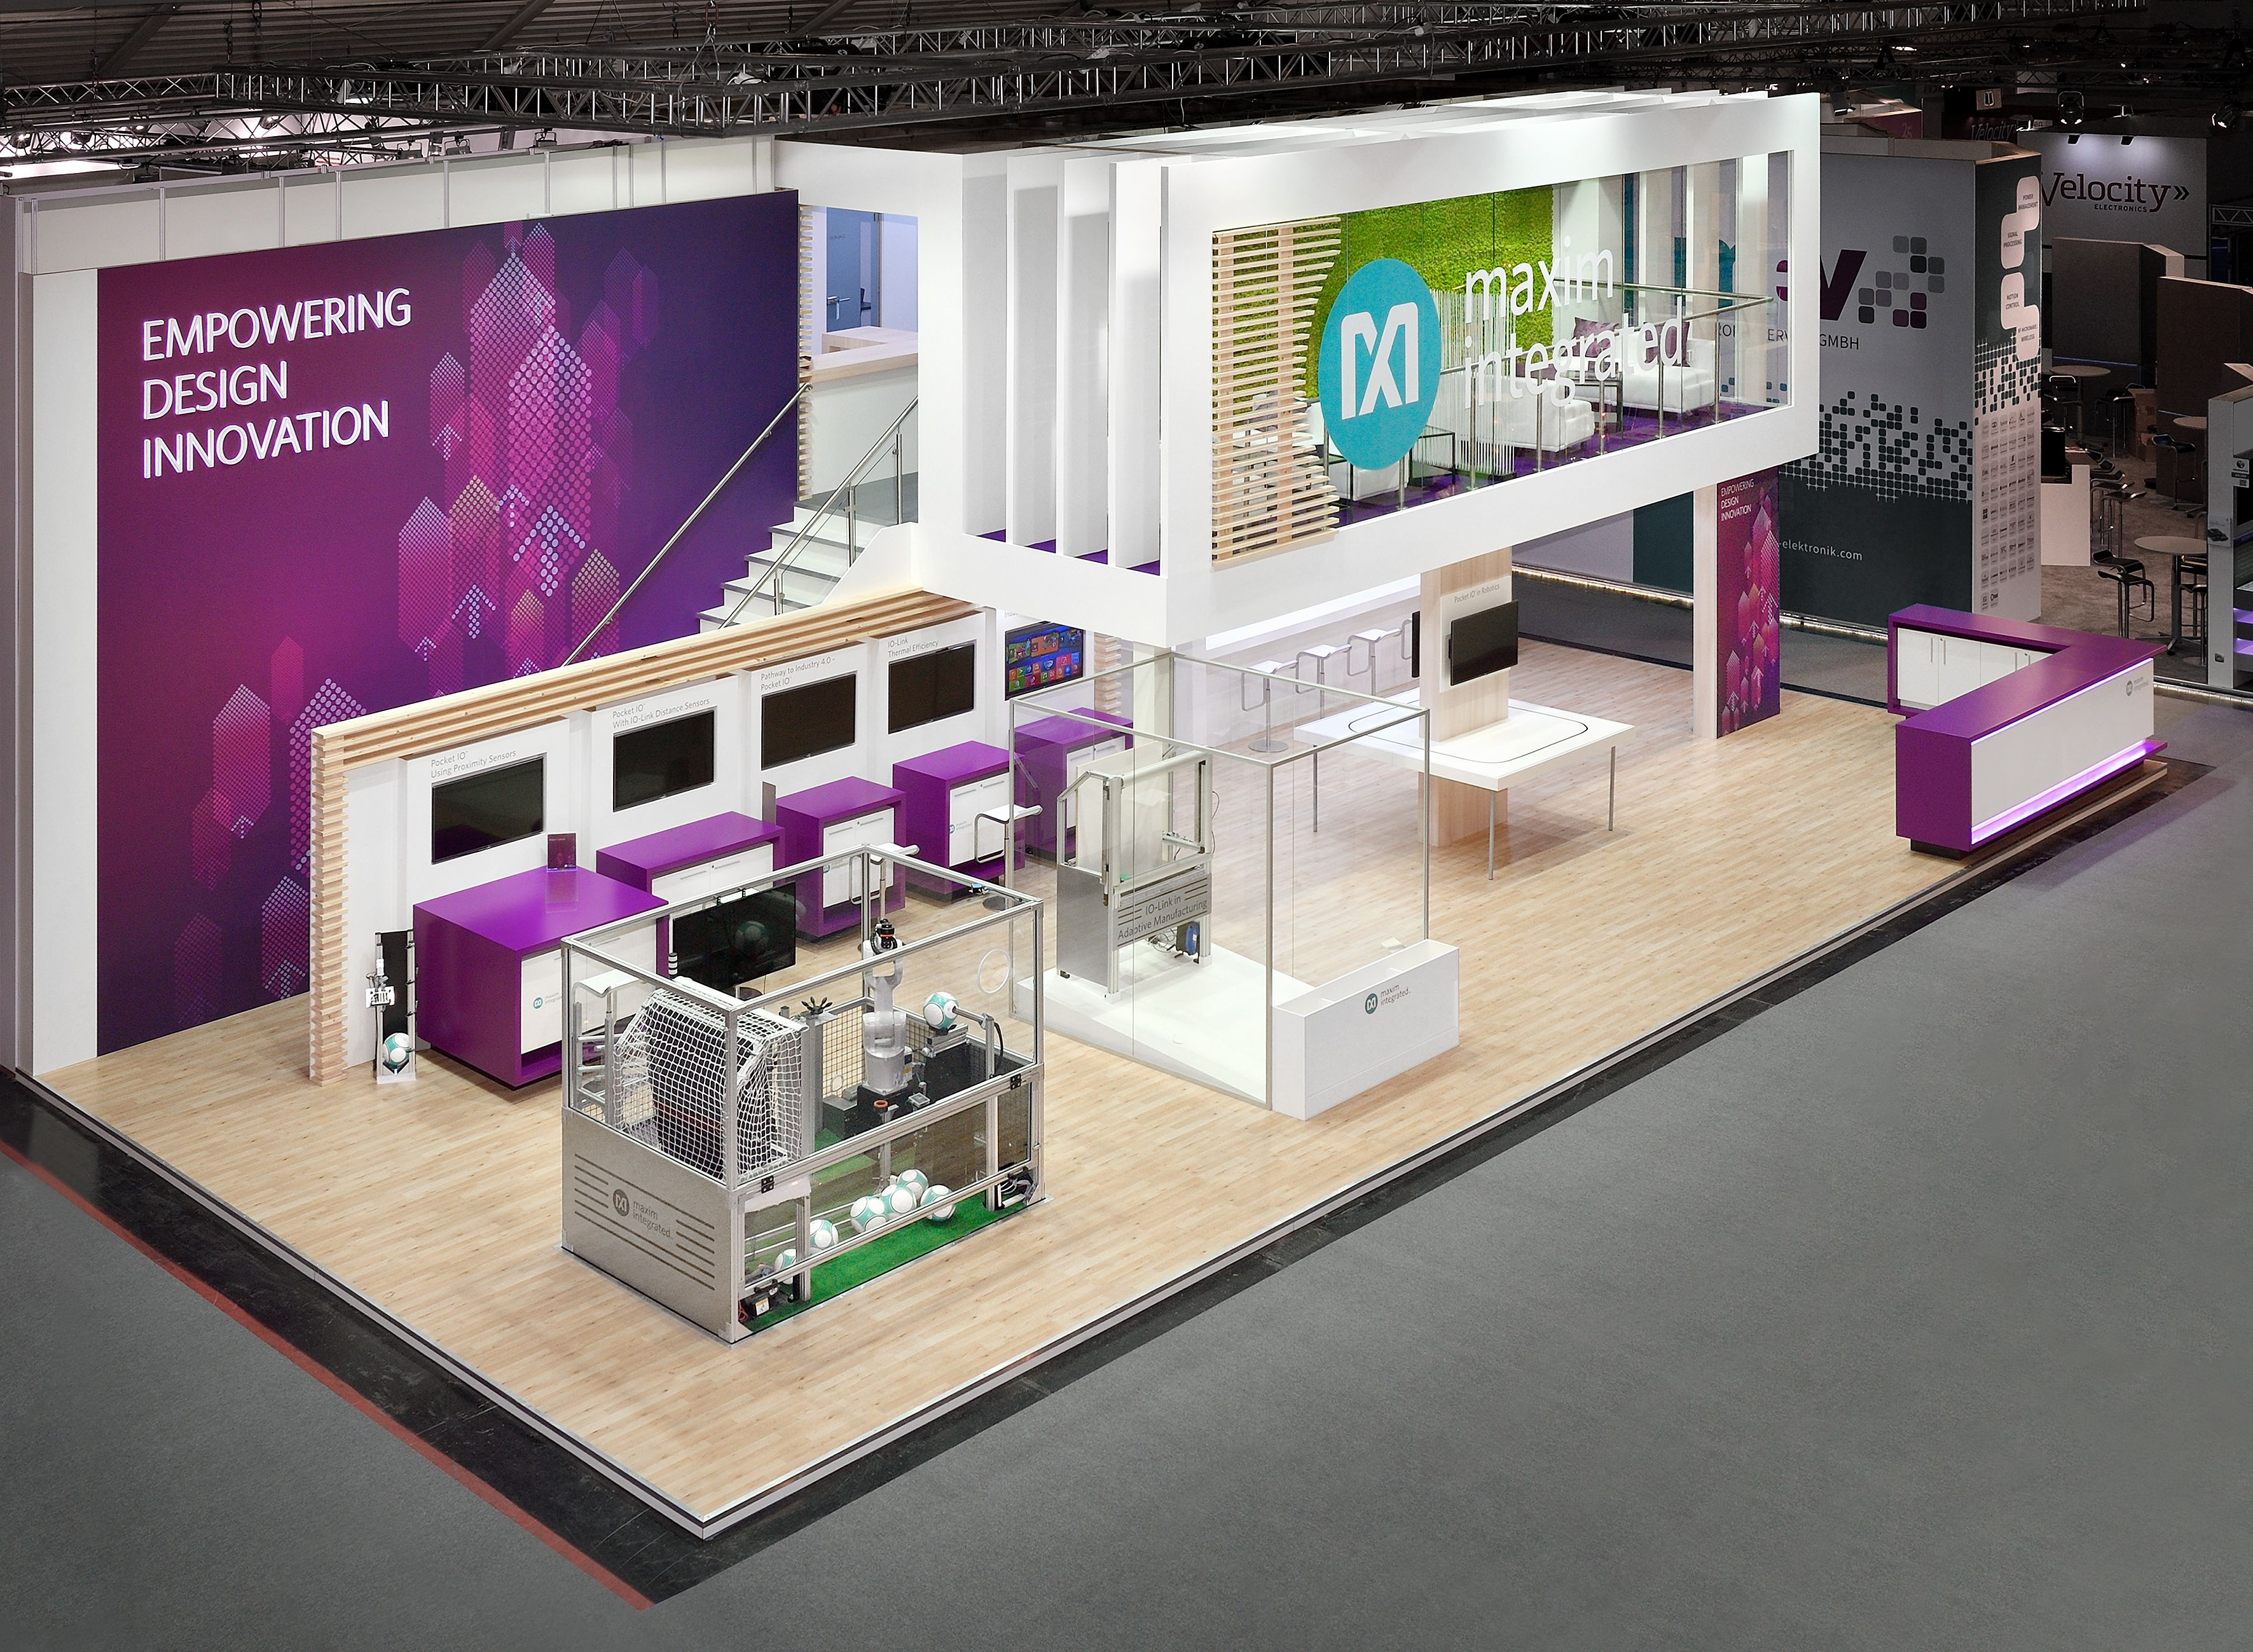 Maxim trade show exhibition stand by nebula exhibits exhibition deco bureau bureau for Stand expo deco